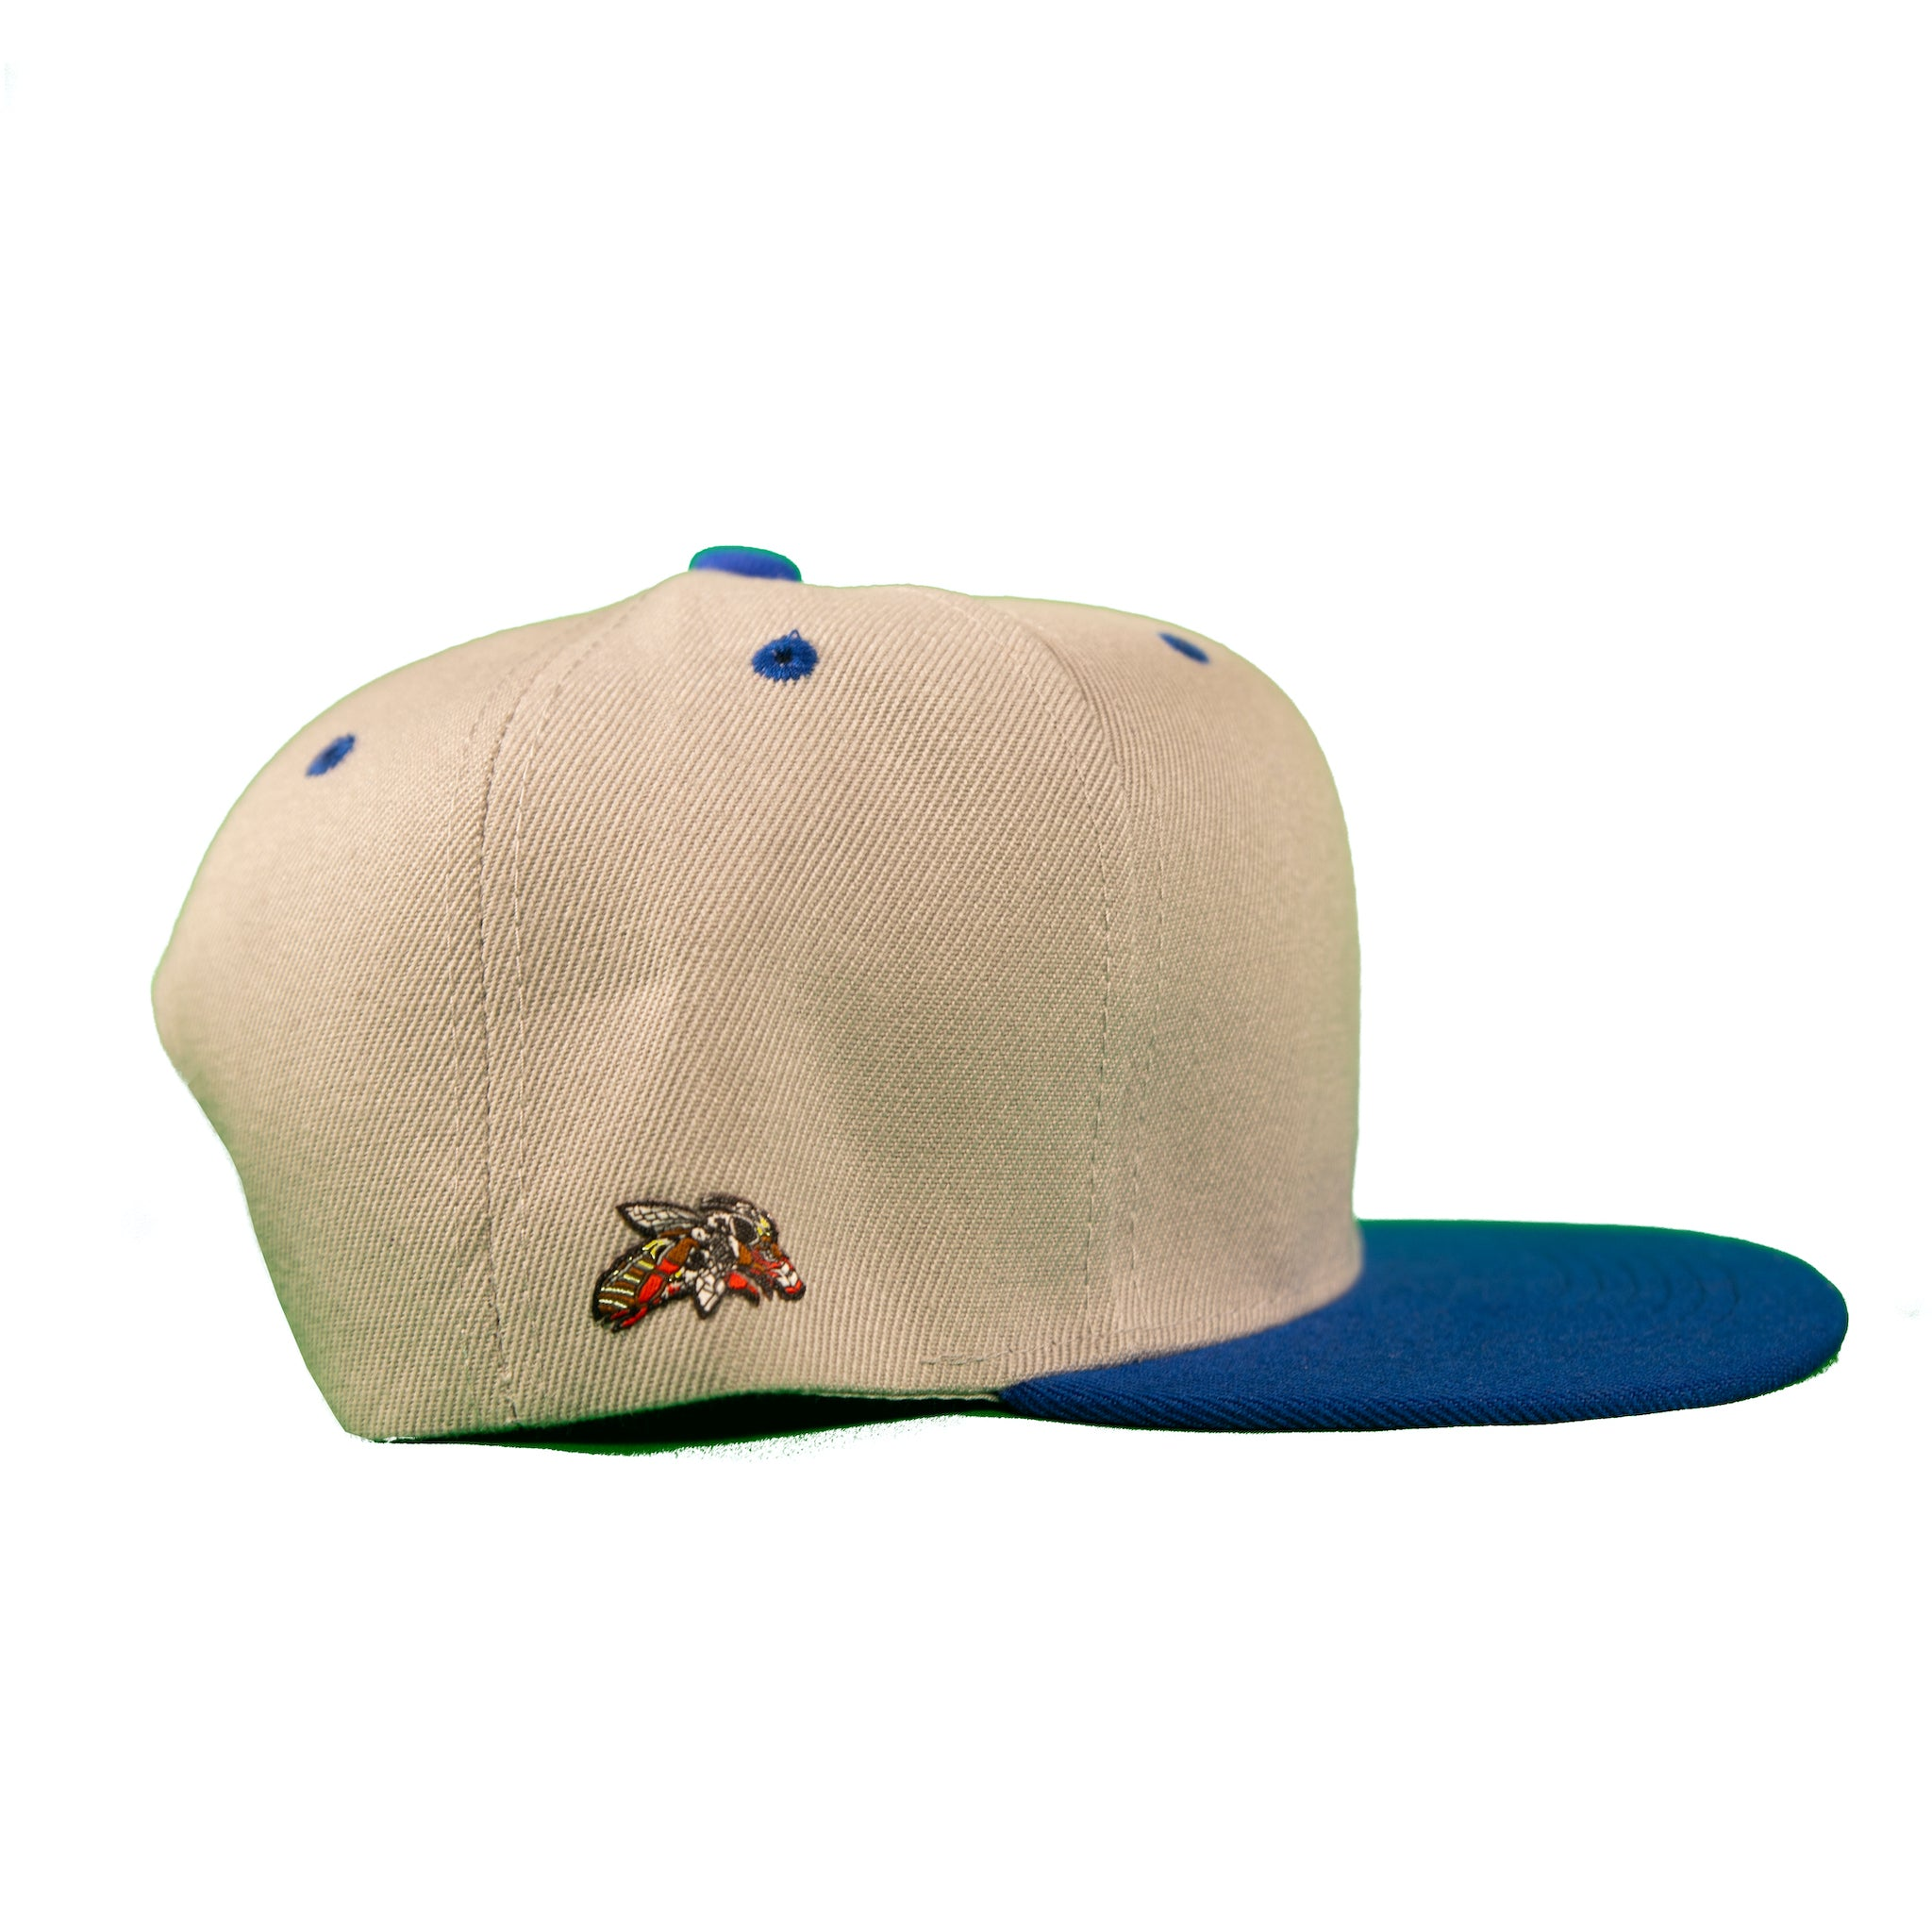 Basic Two-Tone Snap Back in Grey And Royal